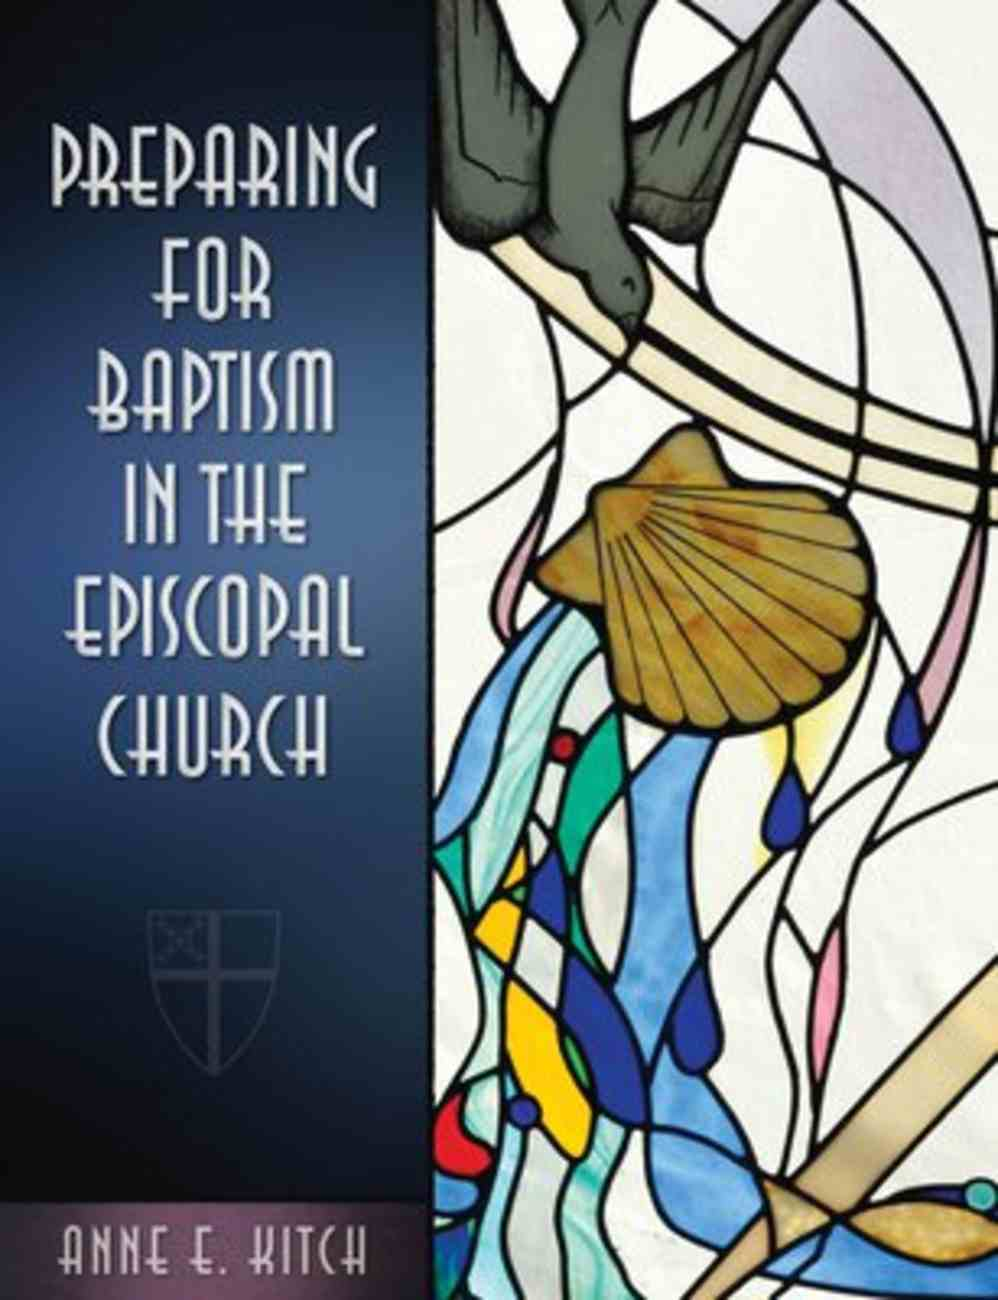 Preparing For Baptism in the Episcopal Church Paperback